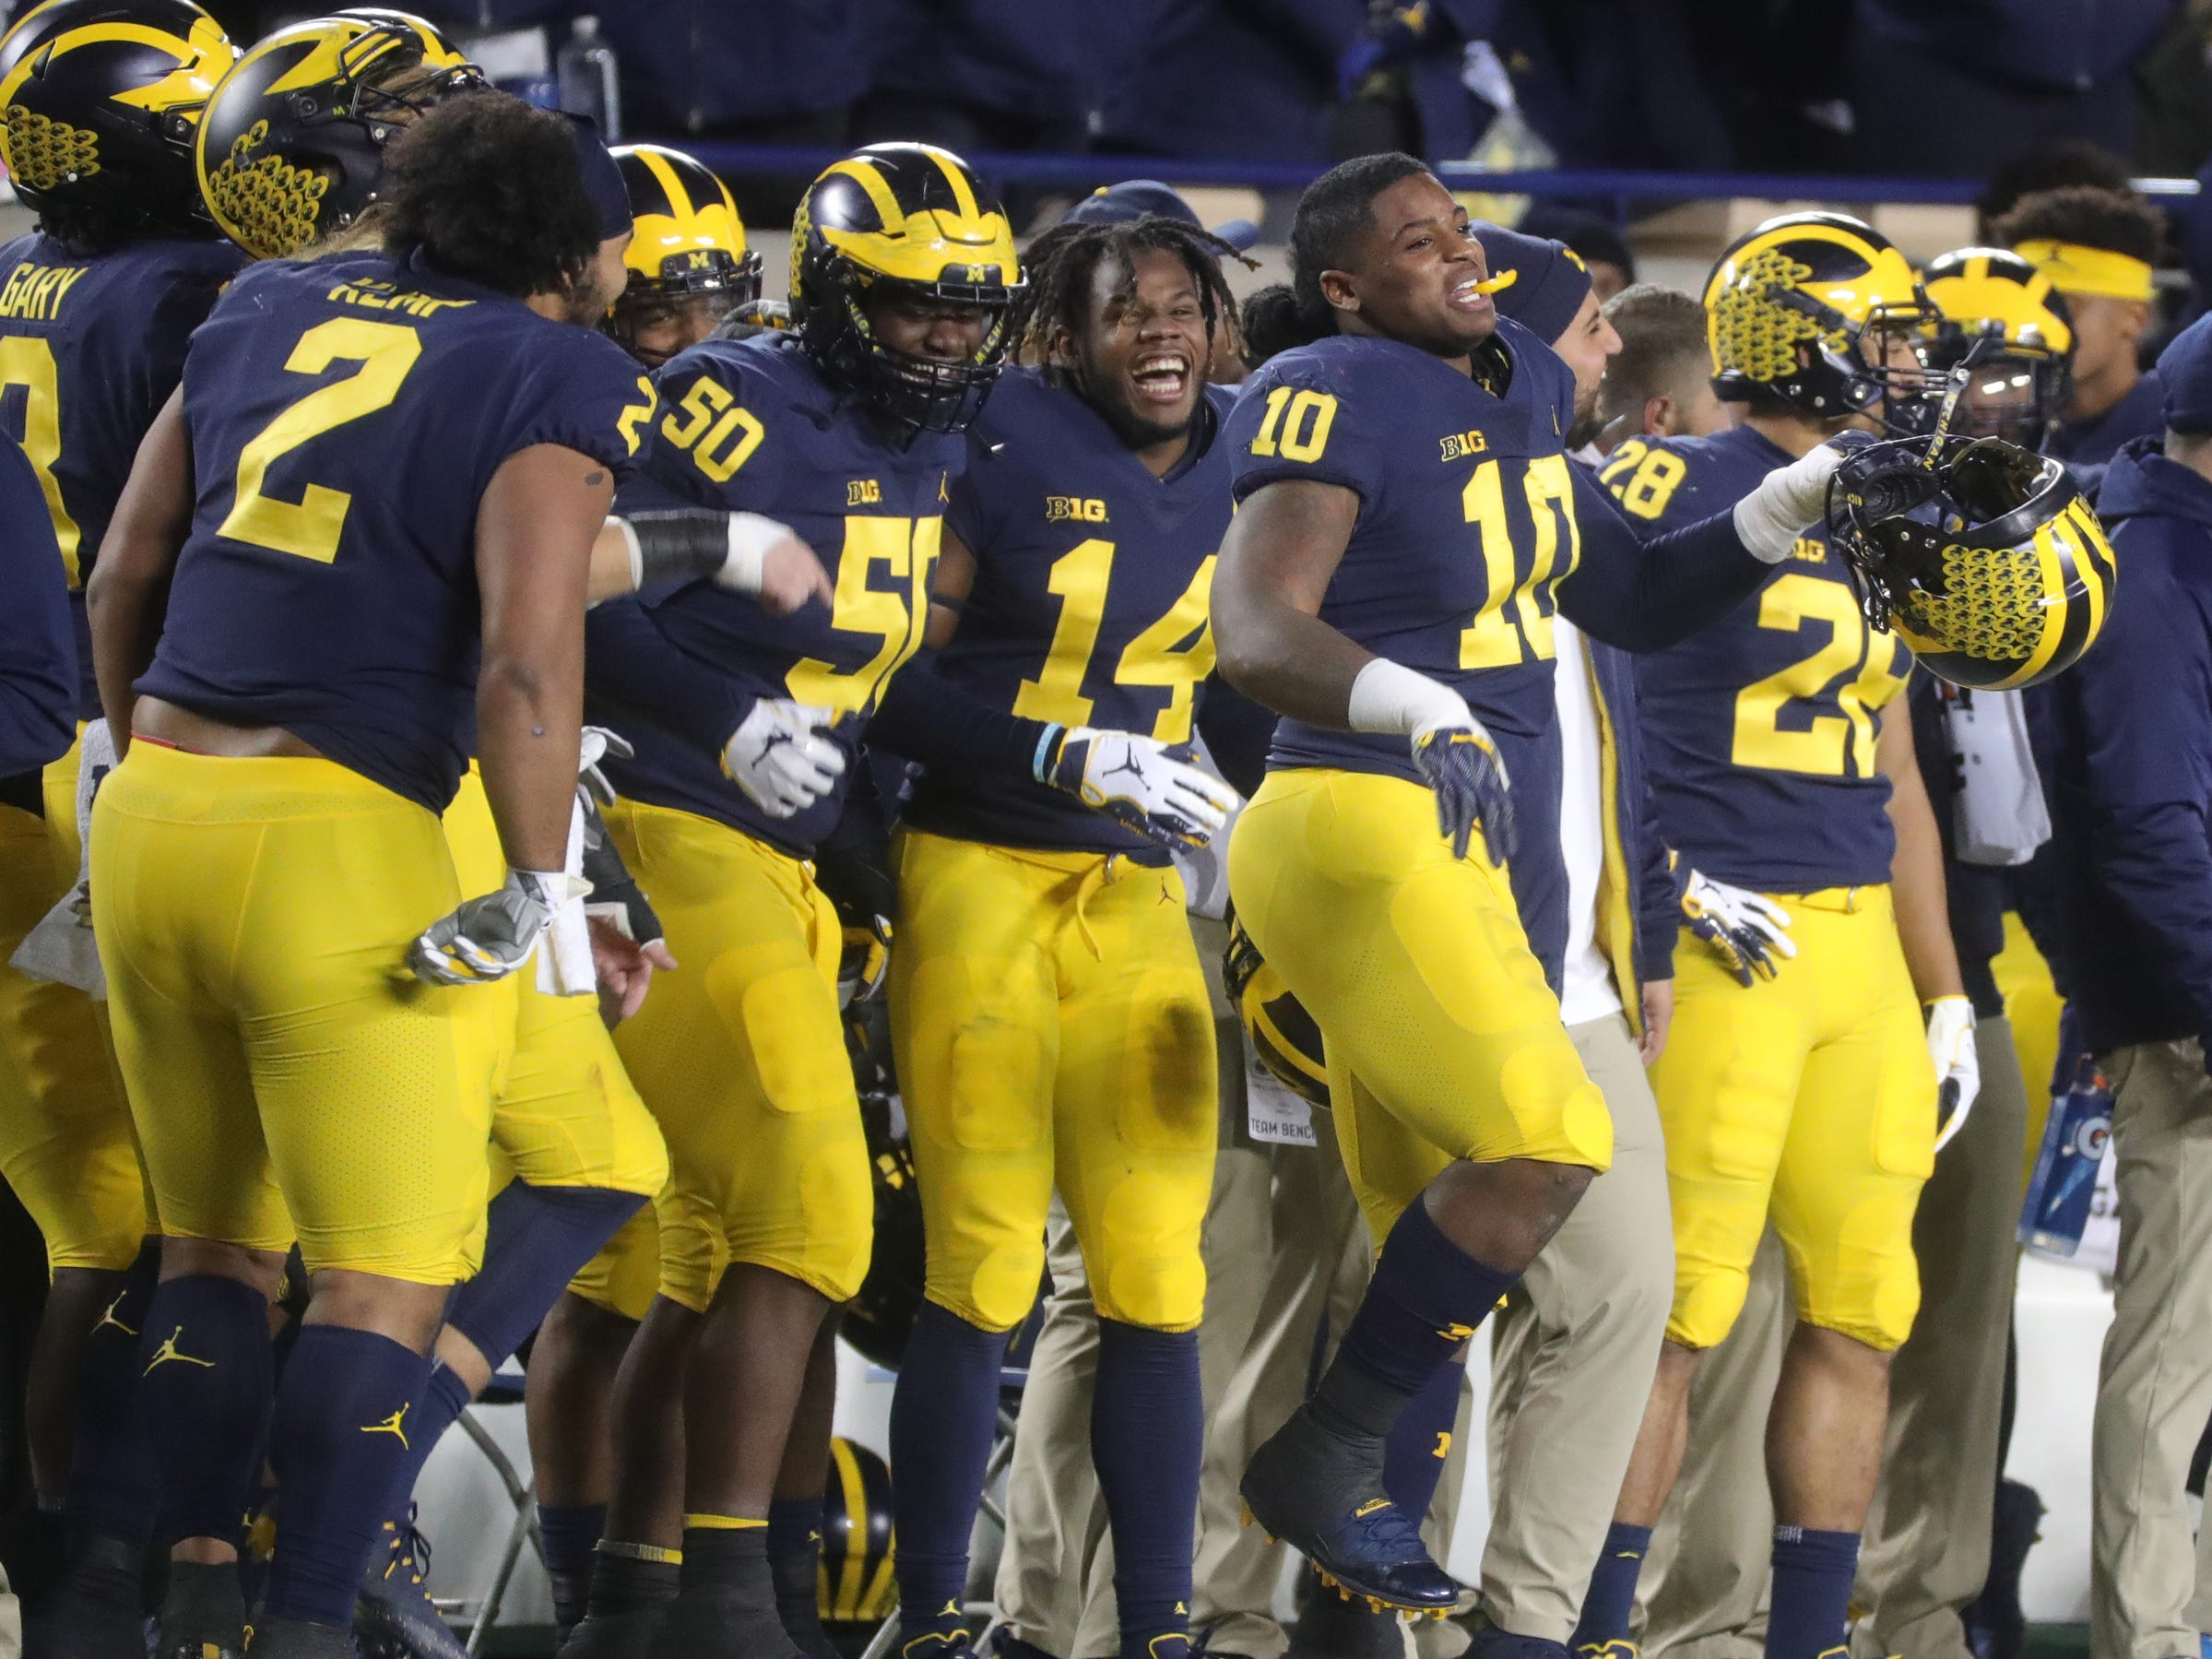 Michigan players, including linebacker Devin Bush (10), celebrate in the final minutes of the 42-7 victory over Penn State, Saturday, Nov. 3, 2018 at Michigan Stadium in Ann Arbor.